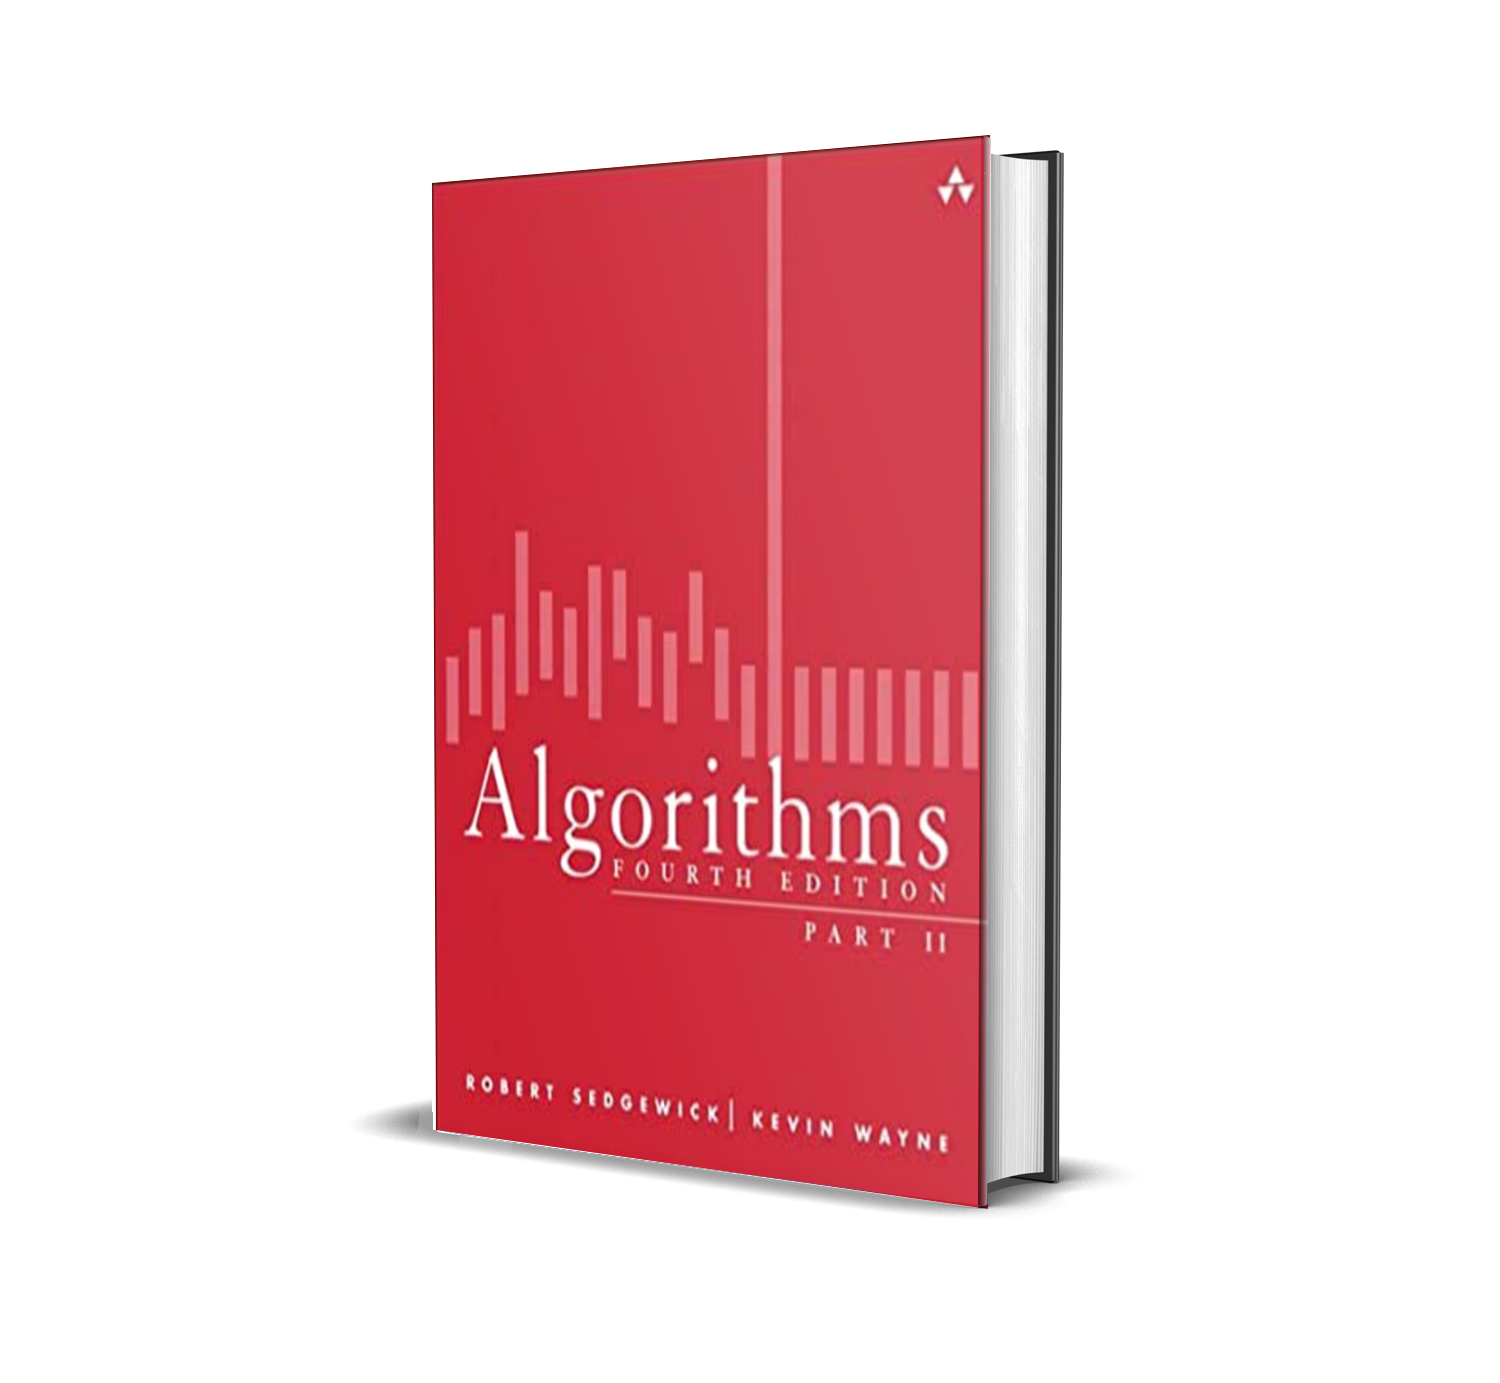 5 Best Books on Algorithms - To master the code interview for top companies like Amazon, Microsoft, Google, and Apple, select one of the best books on algorithms to be your companion — to teach you how to build, test, and optimize algorithms based on common algorithms. These skills are essential to passing a traditional whiteboard coding interview or simply to becoming a better programmer.